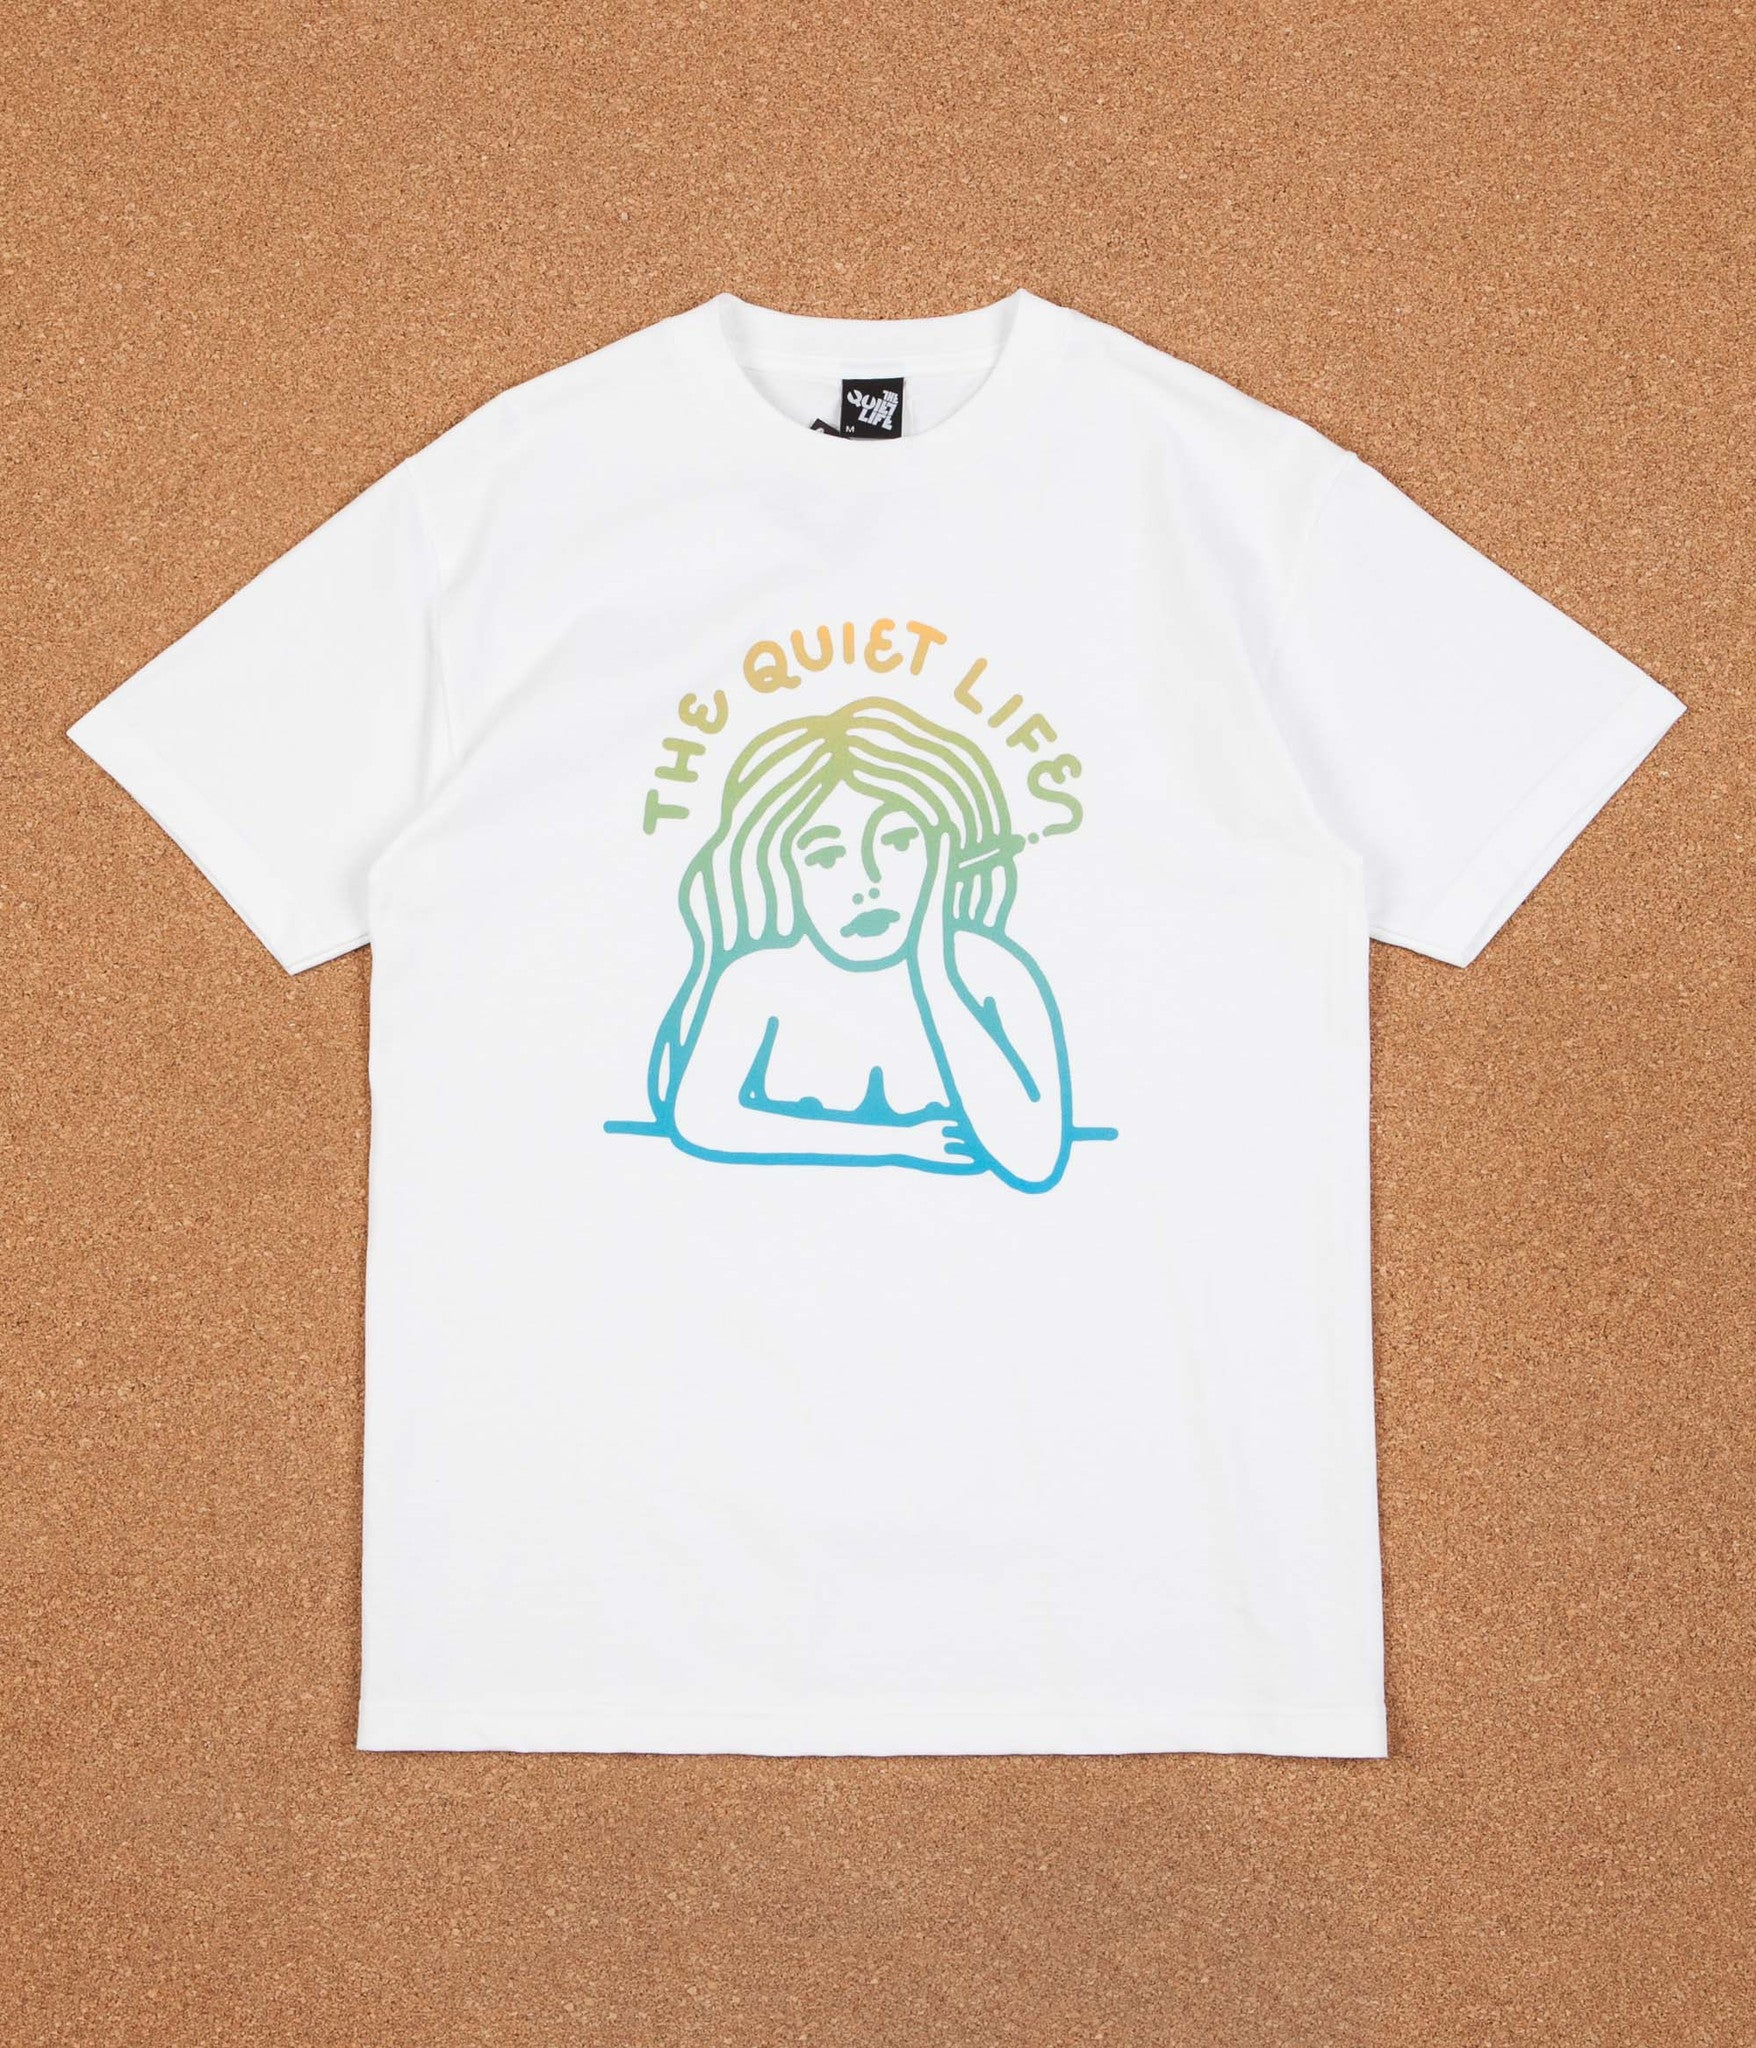 The Quiet Life Smoking Girl Gradient T-Shirt - White